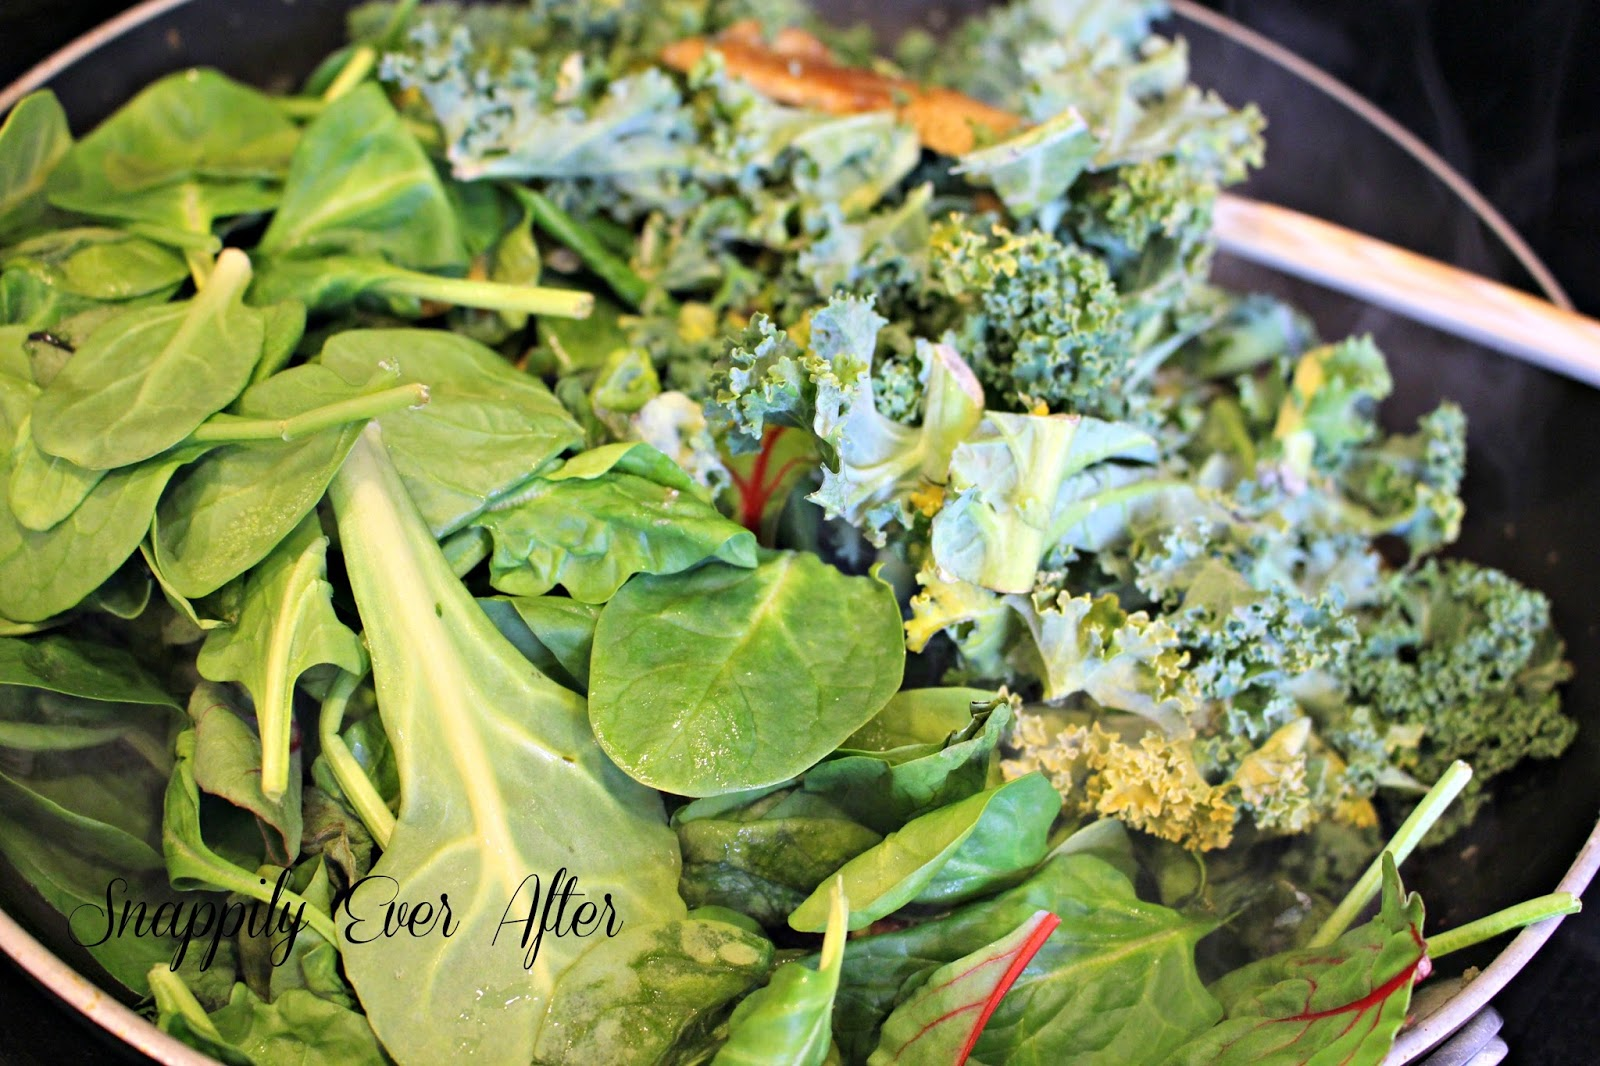 Snappily Ever After Pesto Lasagna With Spinach And Kale